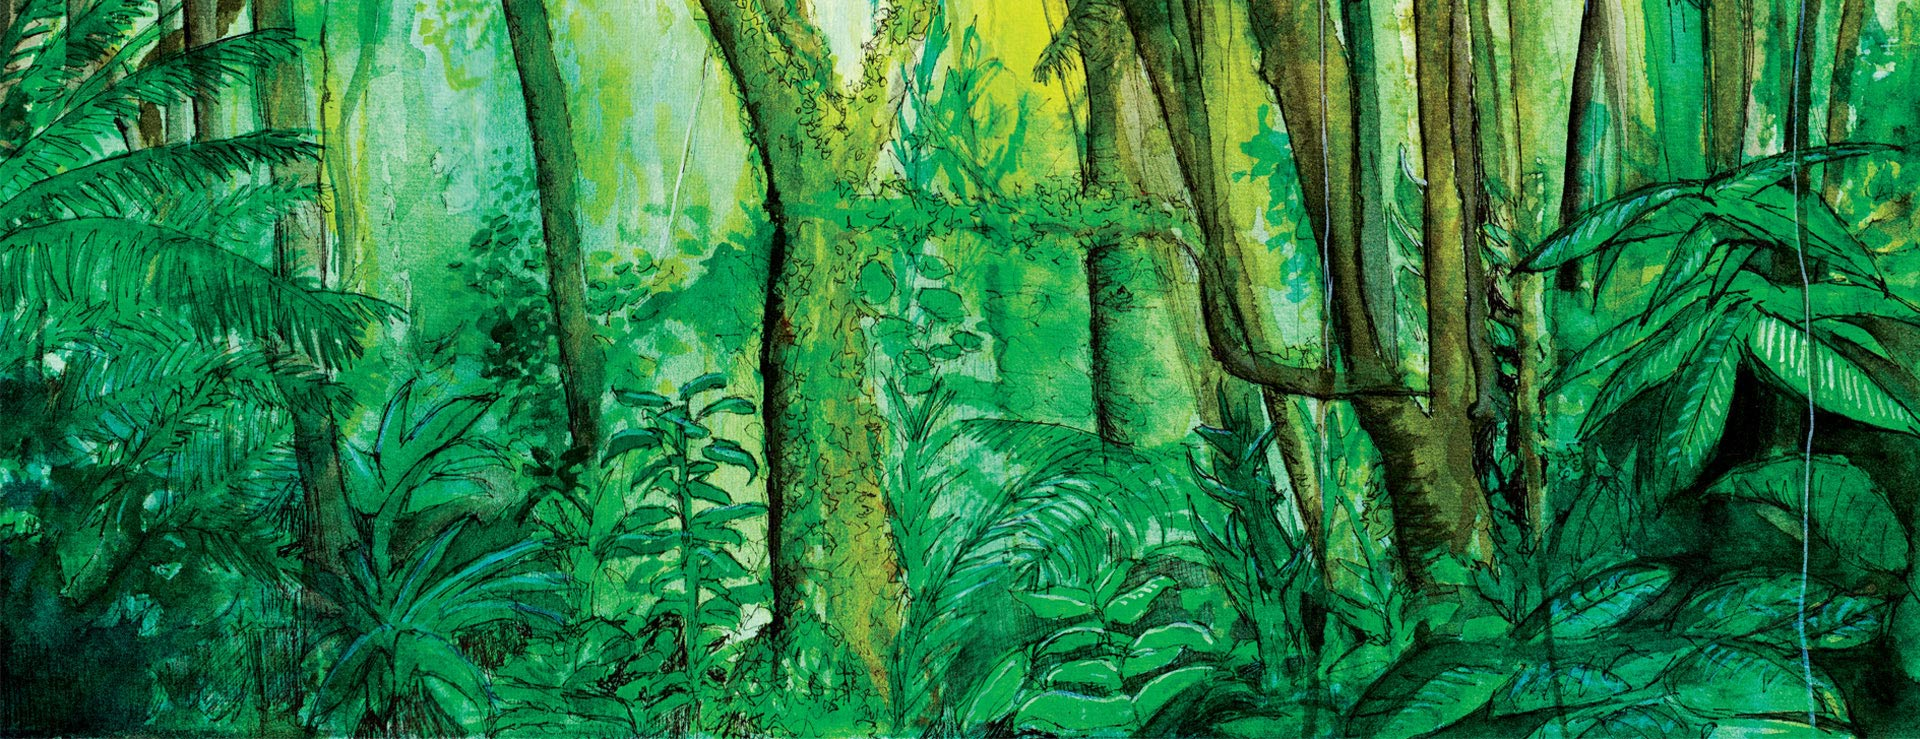 forest-1920-739